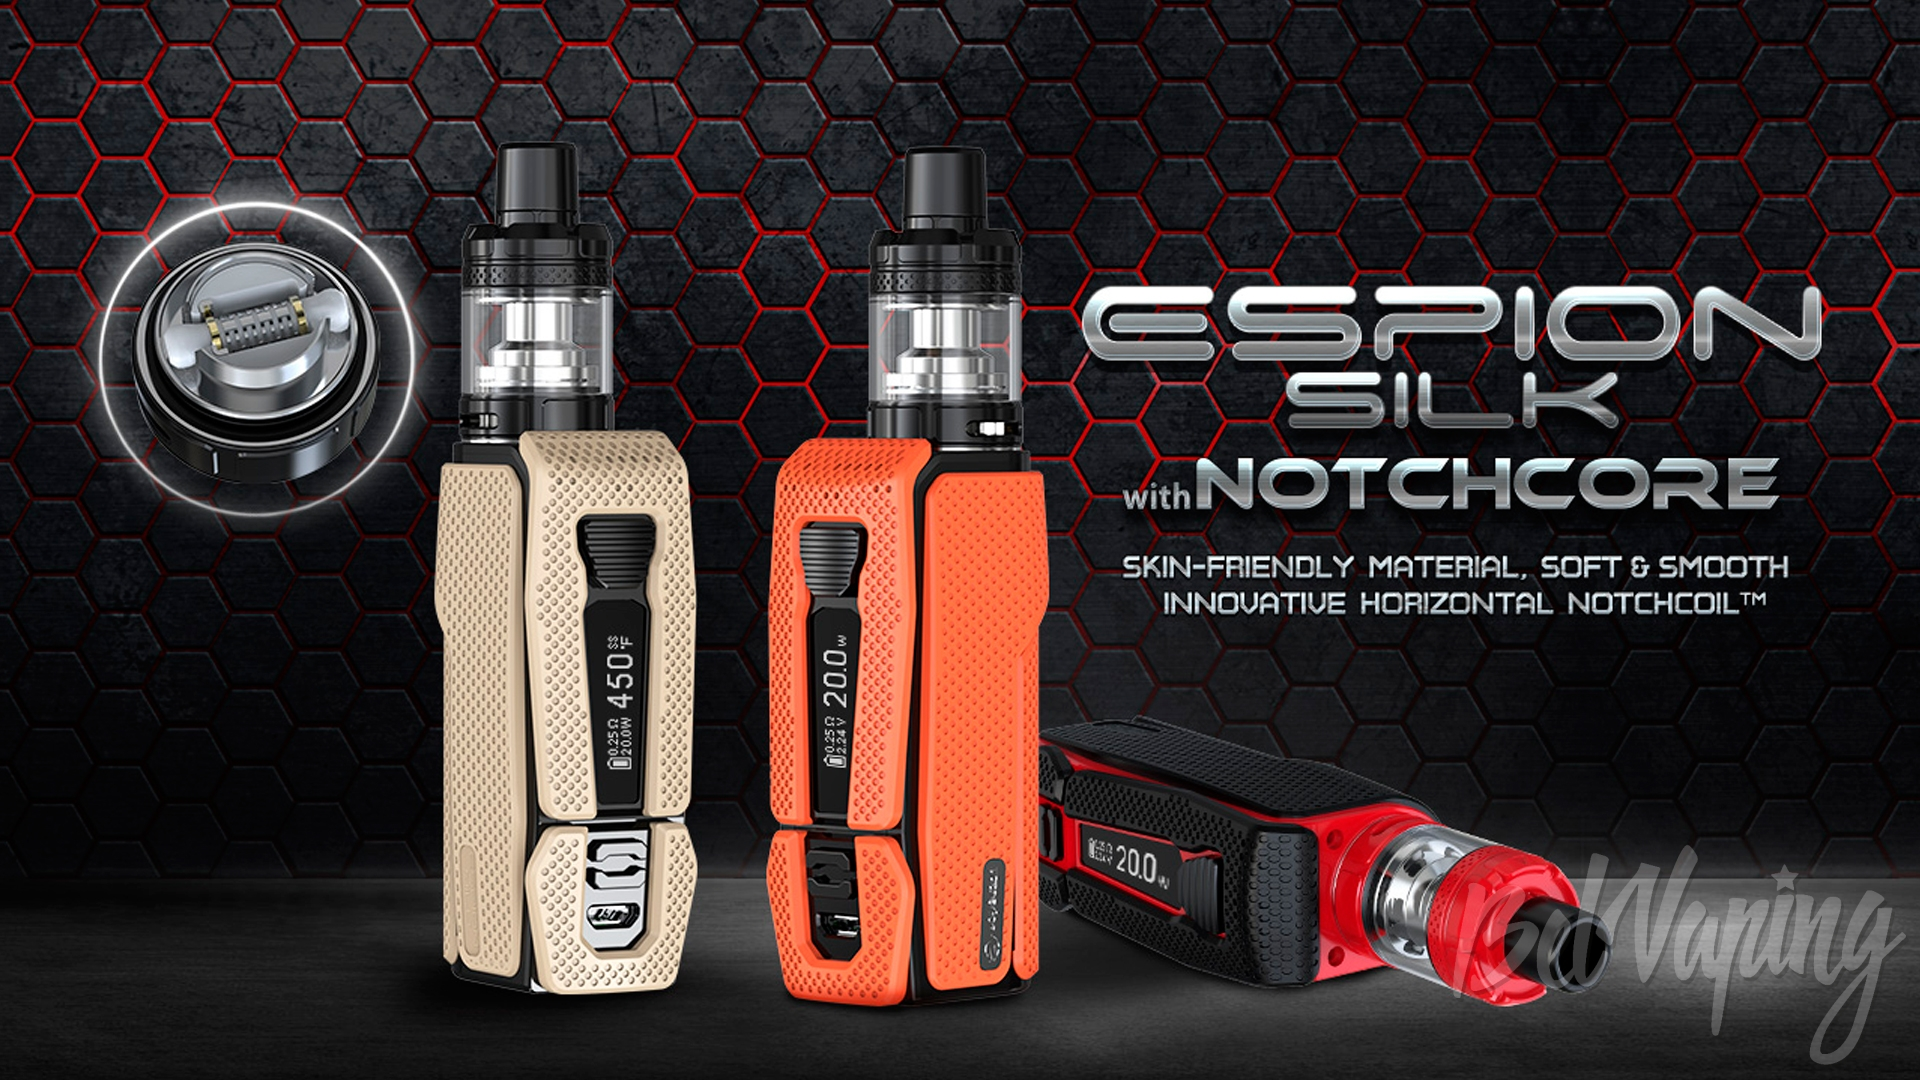 Joyetech ESPION Silk with NotchCore. Первый взгляд